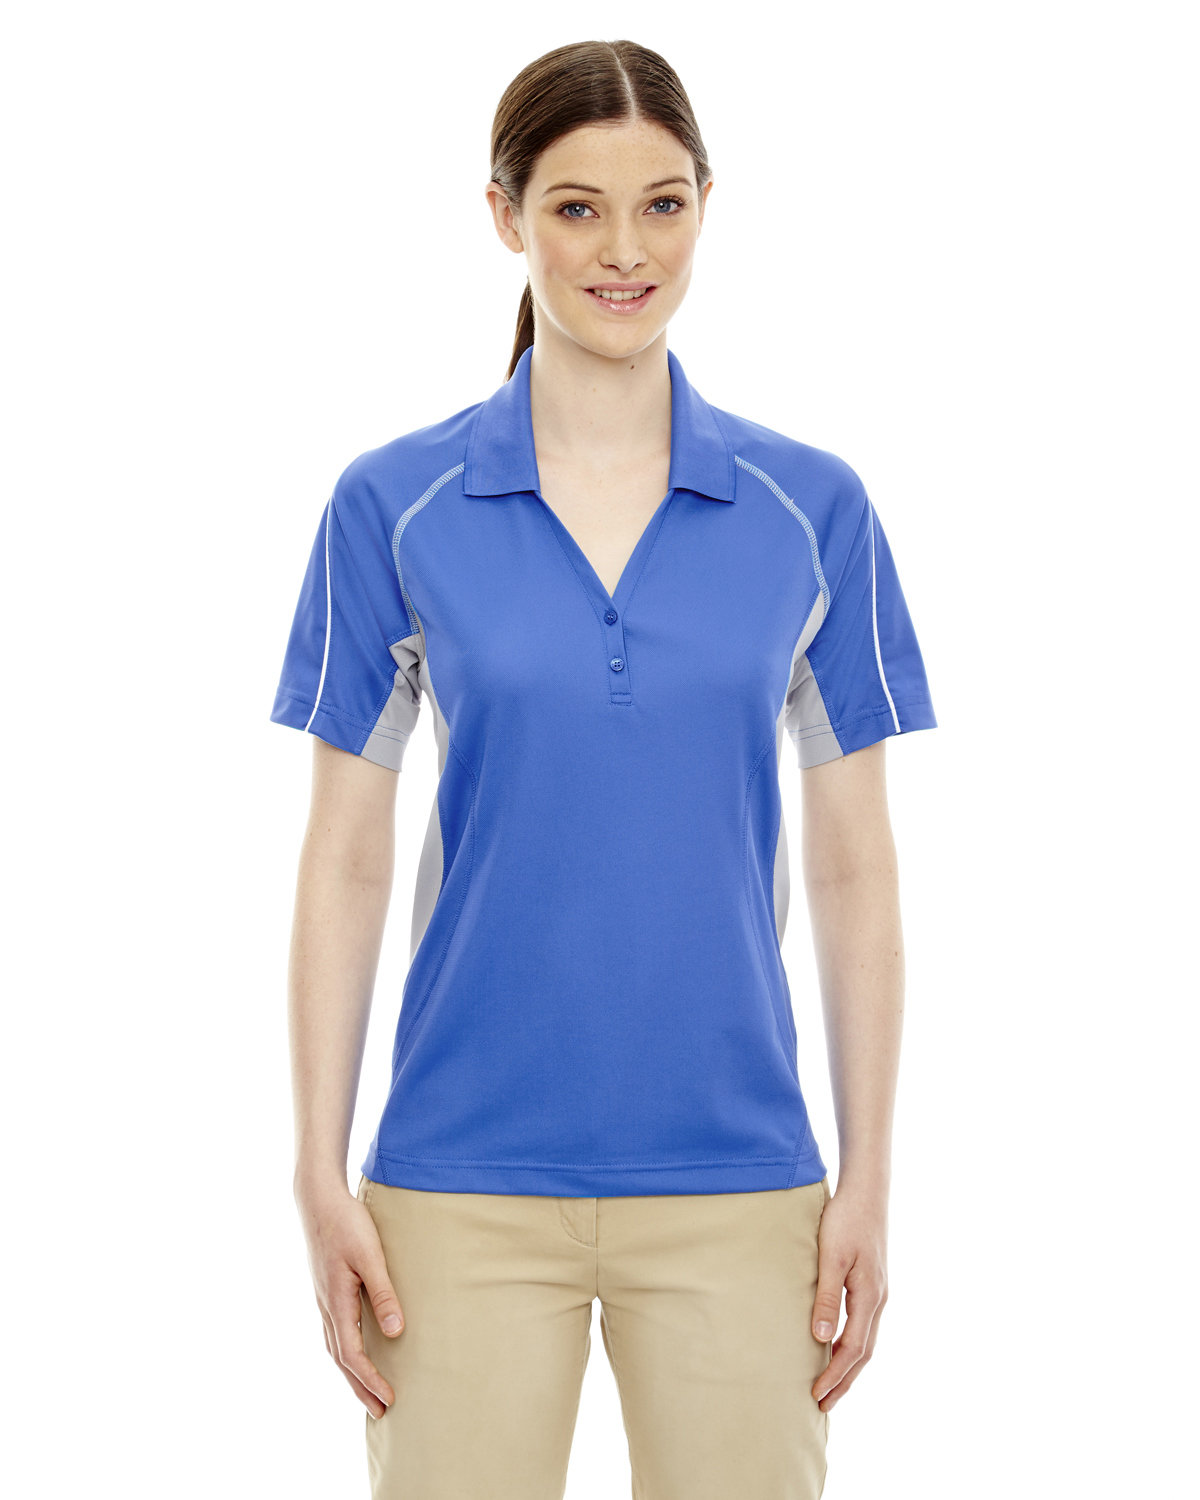 Extreme Ladies' Eperformance™ Parallel Snag Protection Polo with Piping LT NAUTICAL BLU